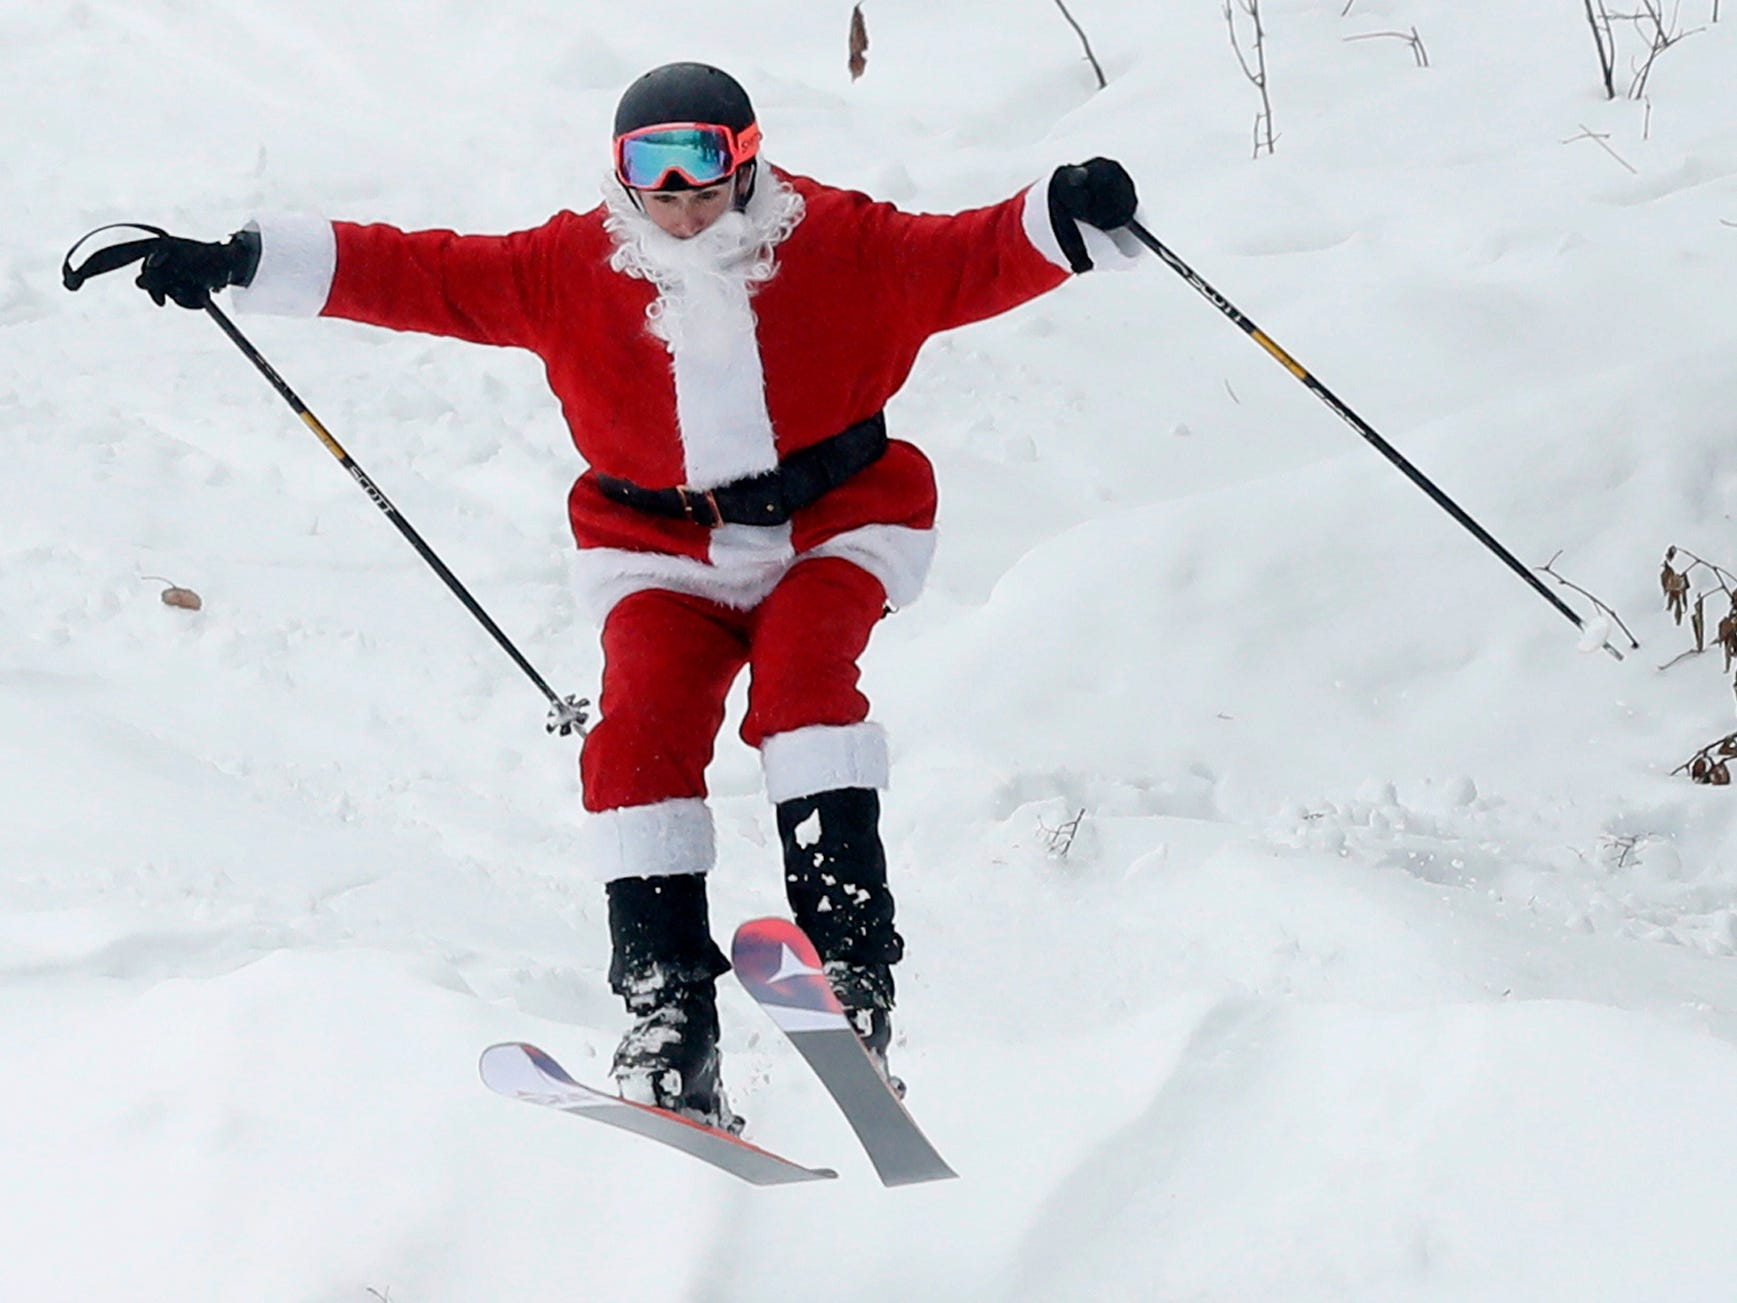 A skier dressed as Santa Claus takes flight during the annual Santa Sunday event, Sunday, Dec. 2, 2018, in Newry, Maine. The red-suited lookalikes aim to put a smile on peopleÕs faces while raising money for charity.